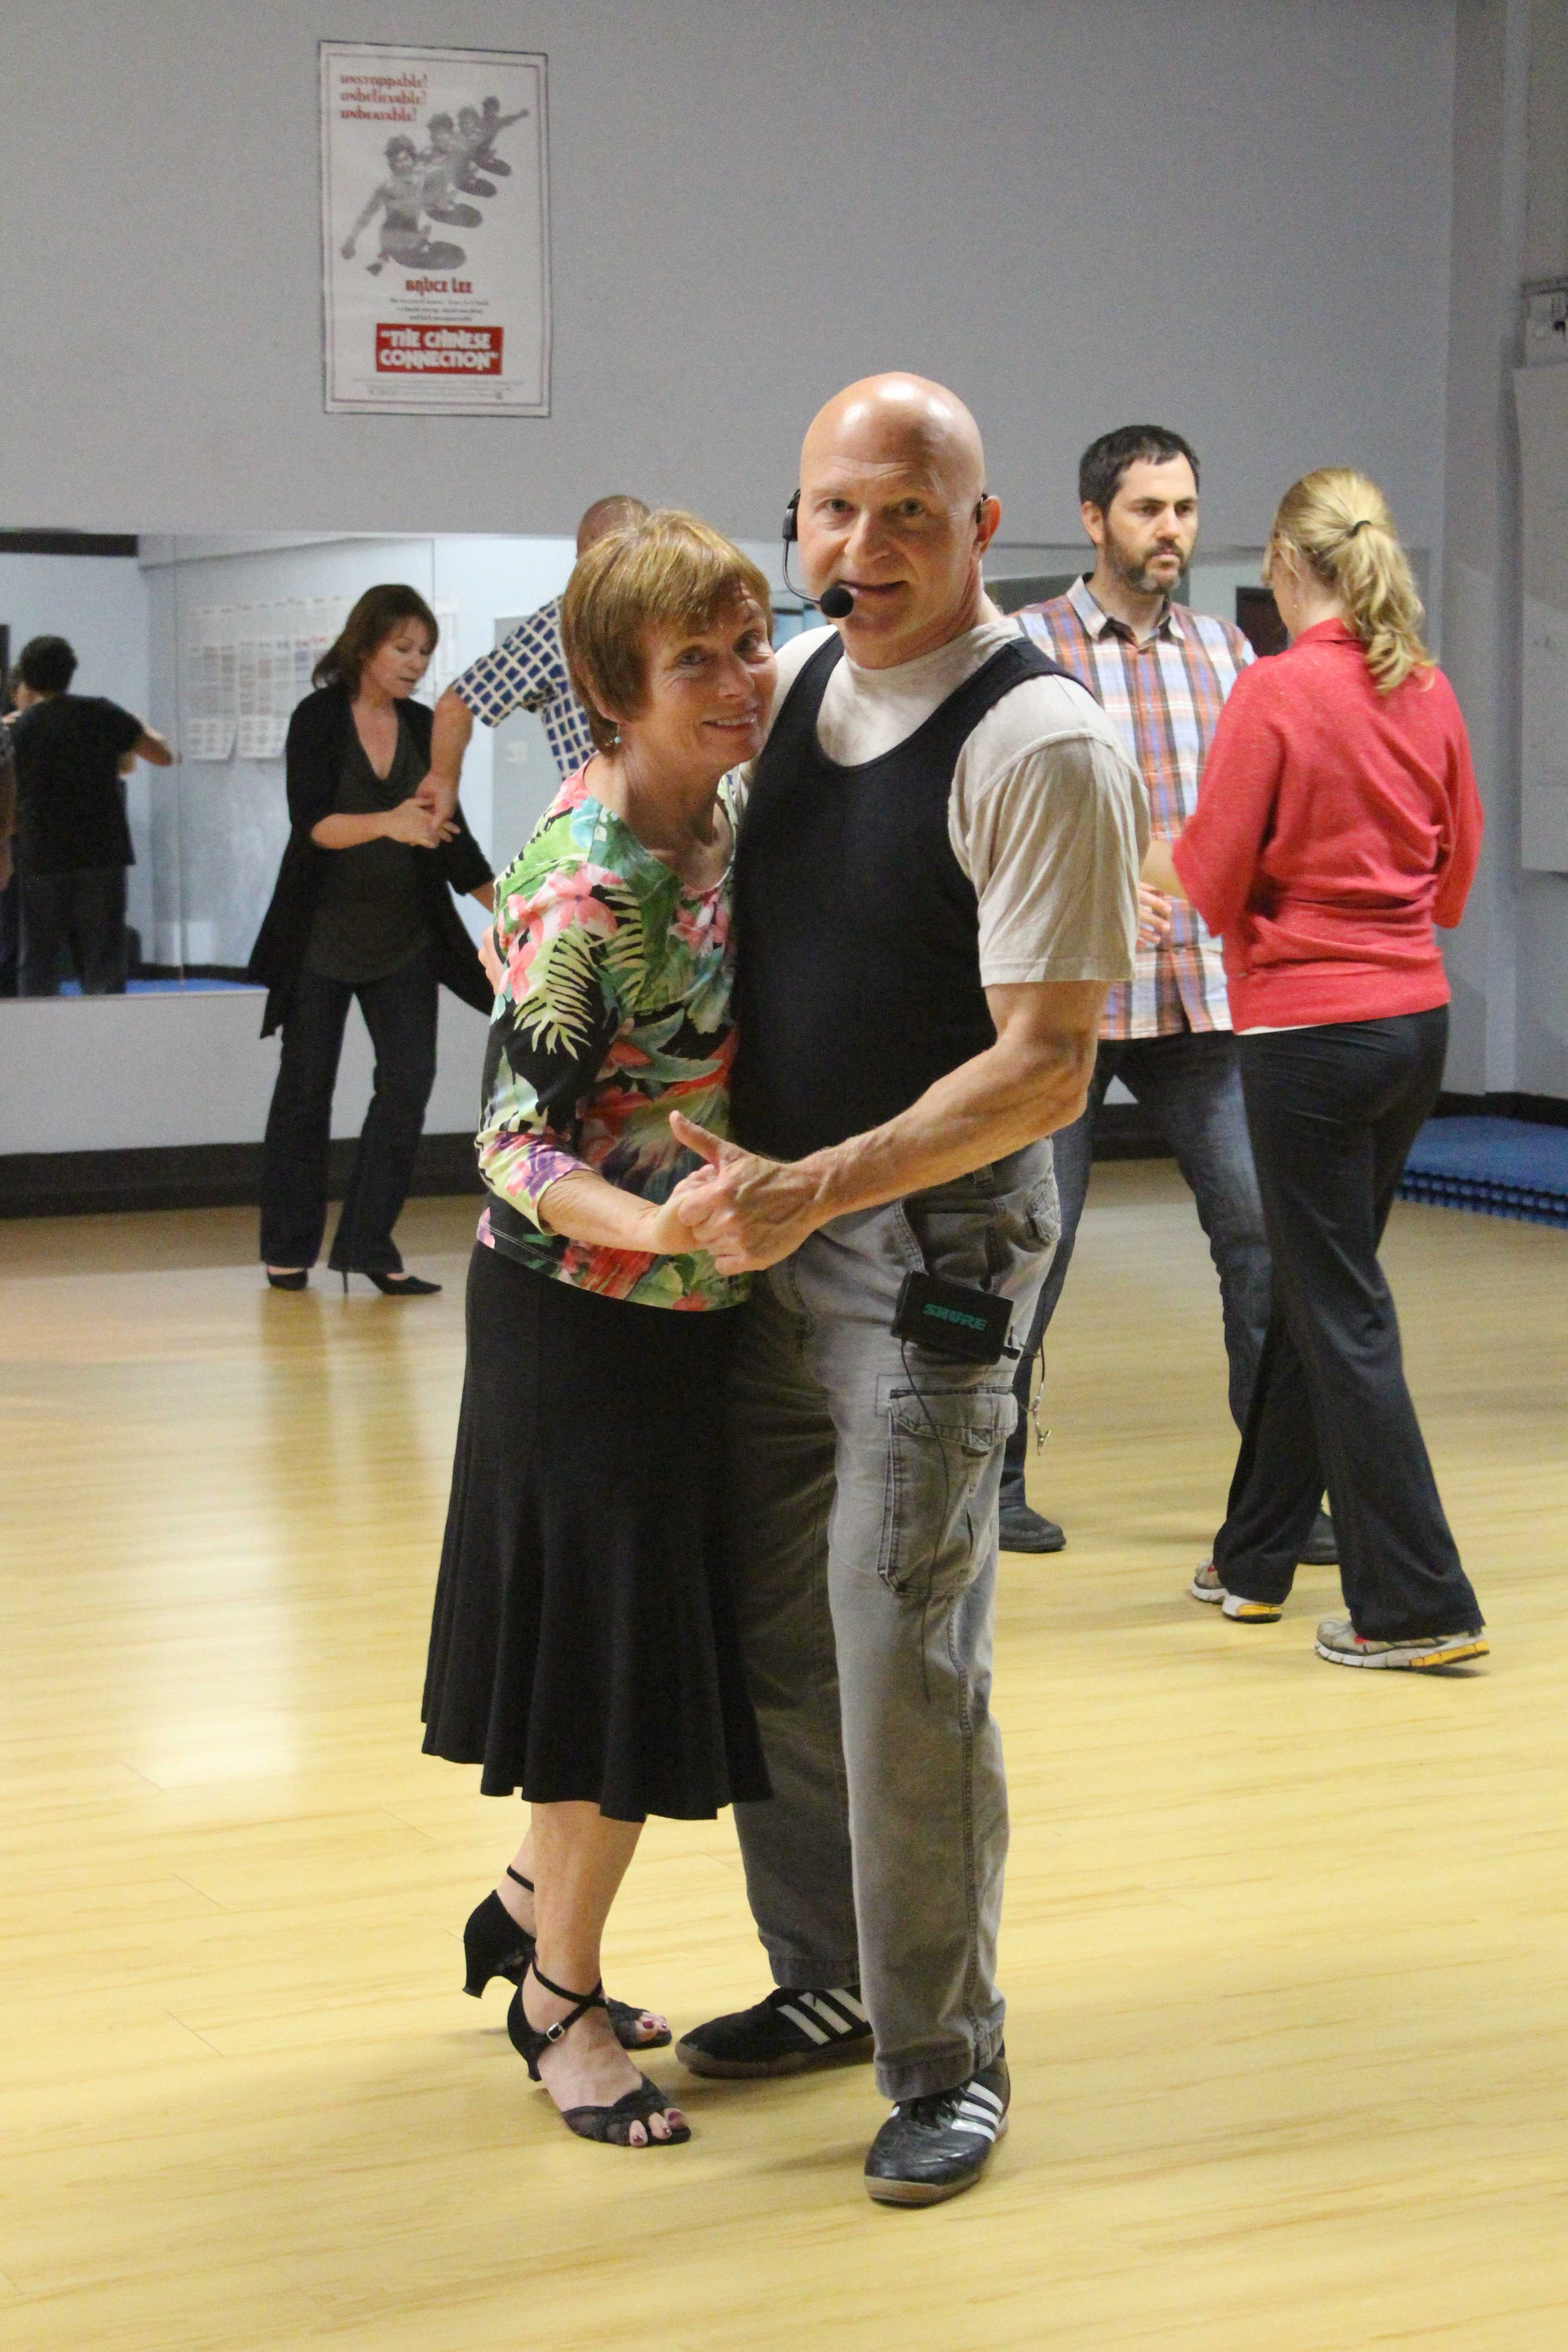 Instructors Annie and Denny lead their students during a swing dance class.